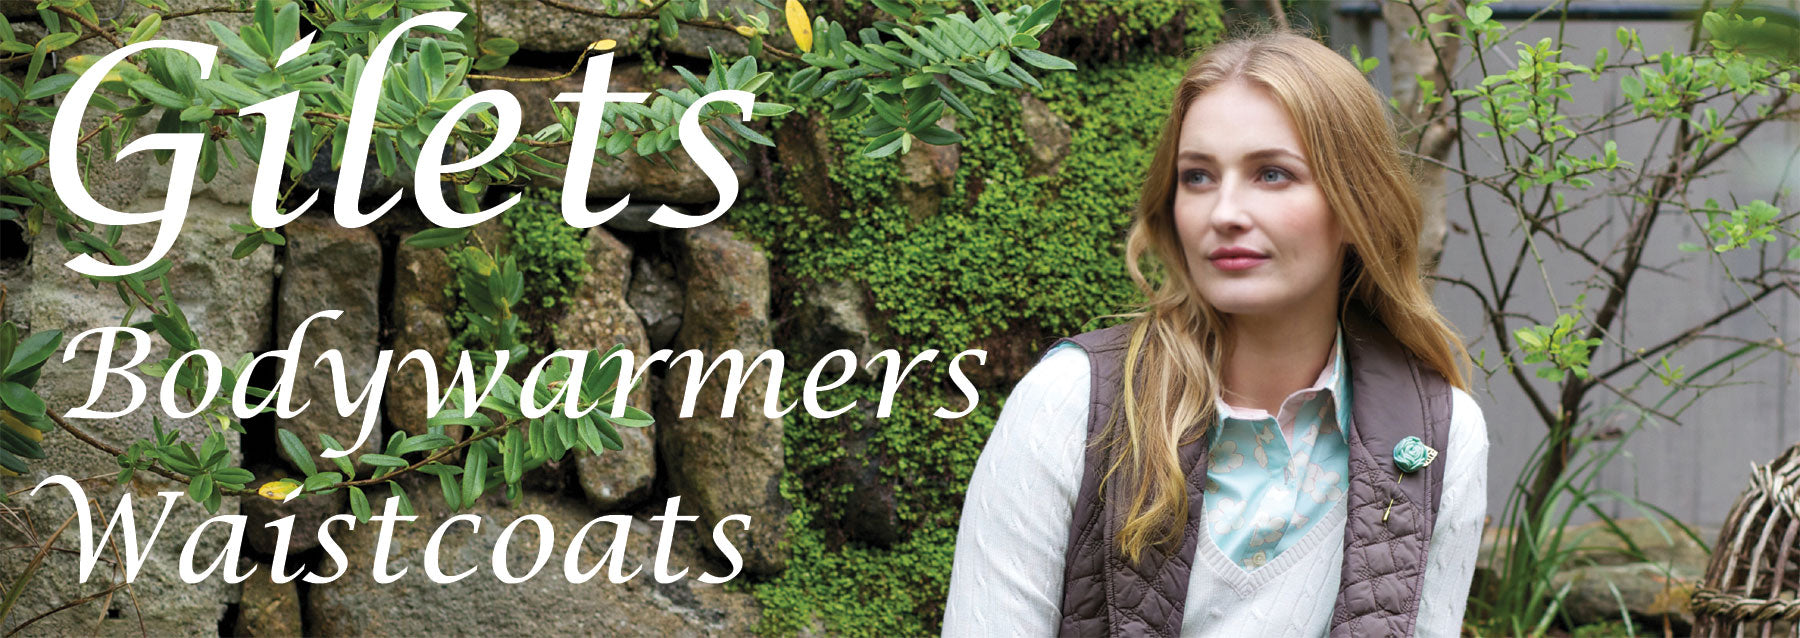 ladies bodywarmers gillets and waistcoats